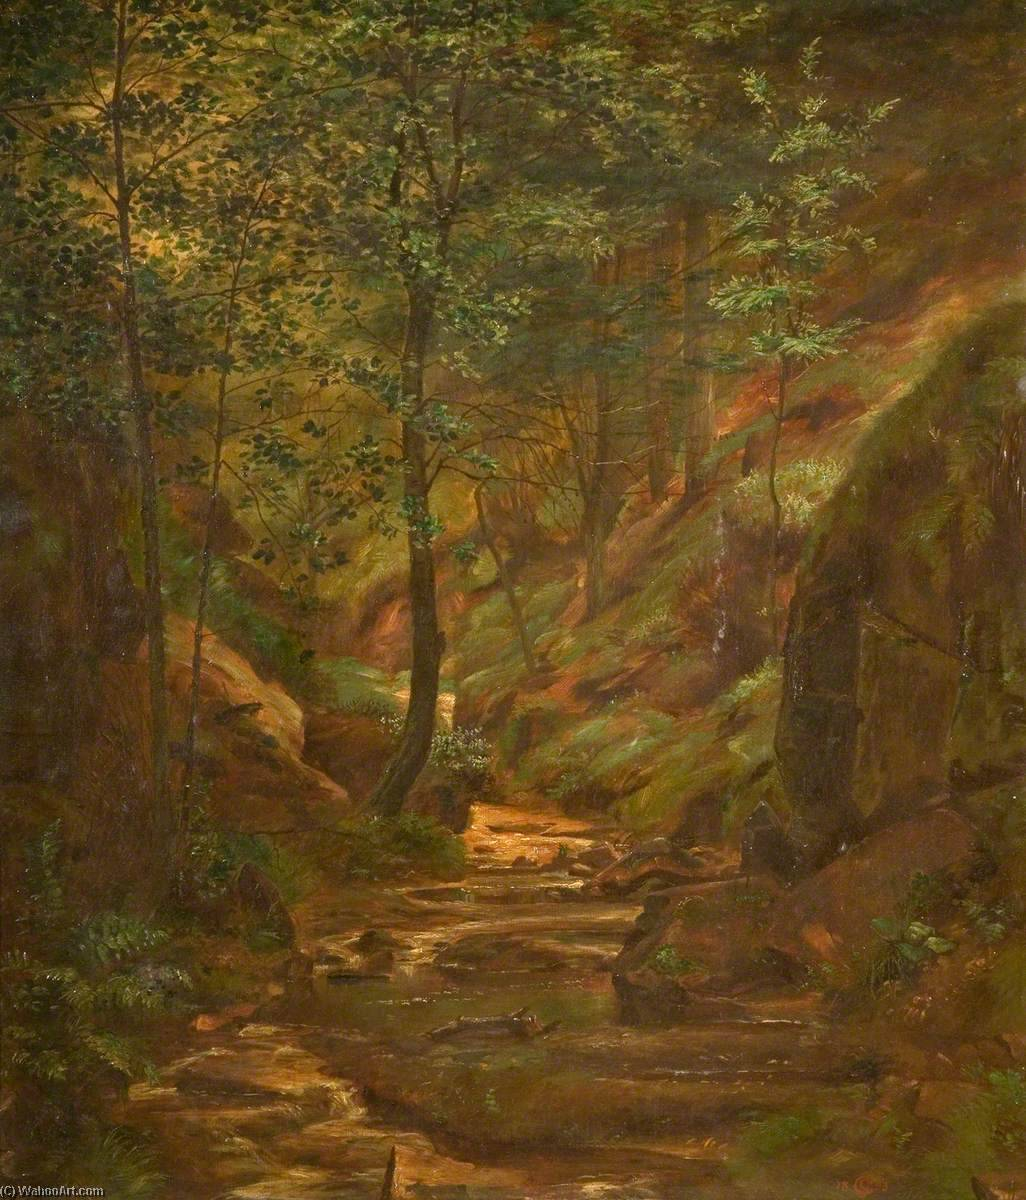 Order Painting Copy : Woodland Scene, 1893 by George Cartlidge | WahooArt.com